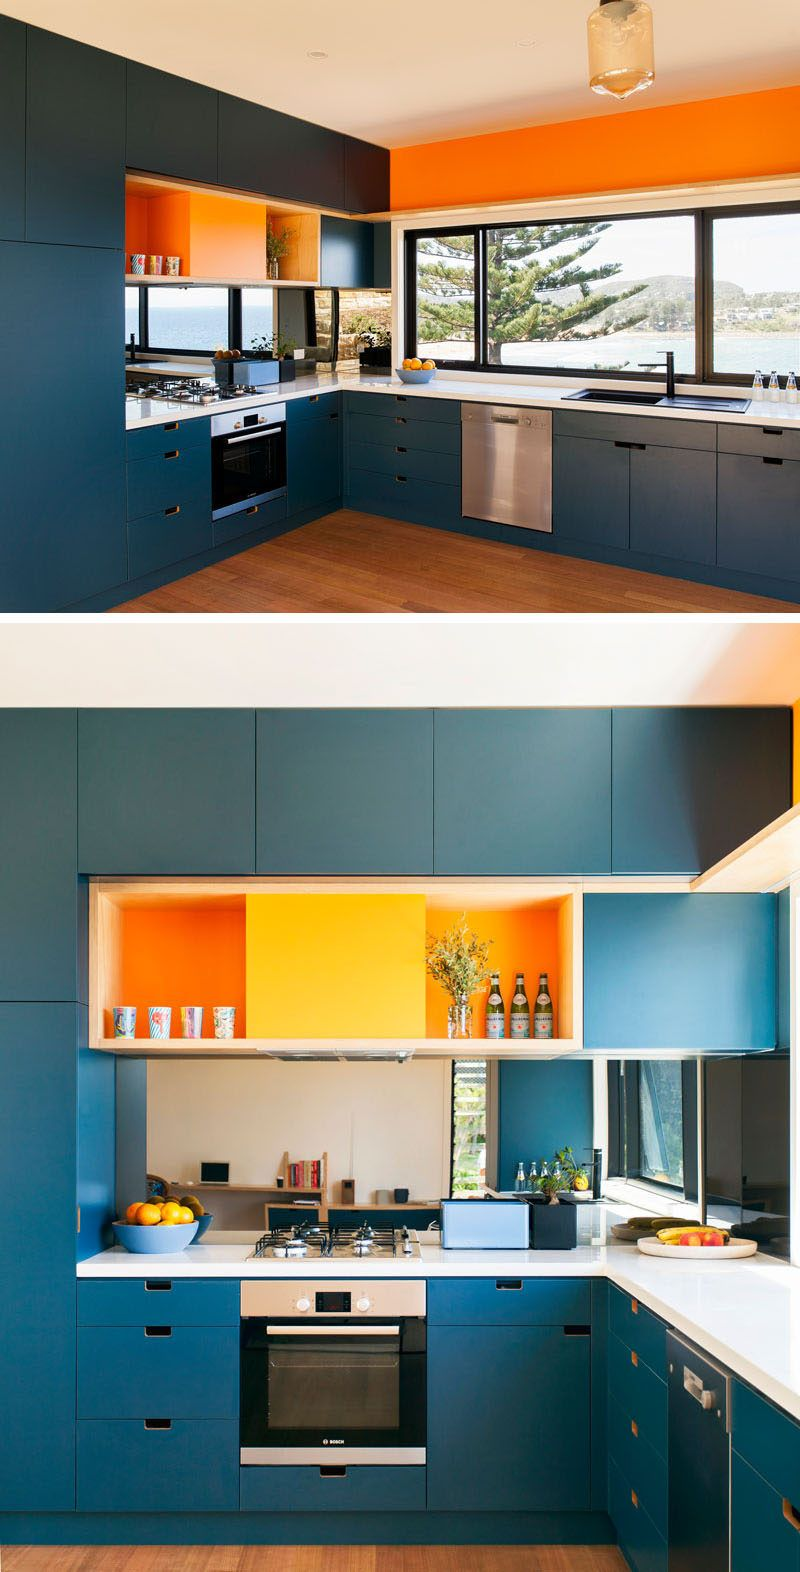 This Dark Blue Kitchen Is Brightened Up With White Countertops And Colorful Pops Of Orange